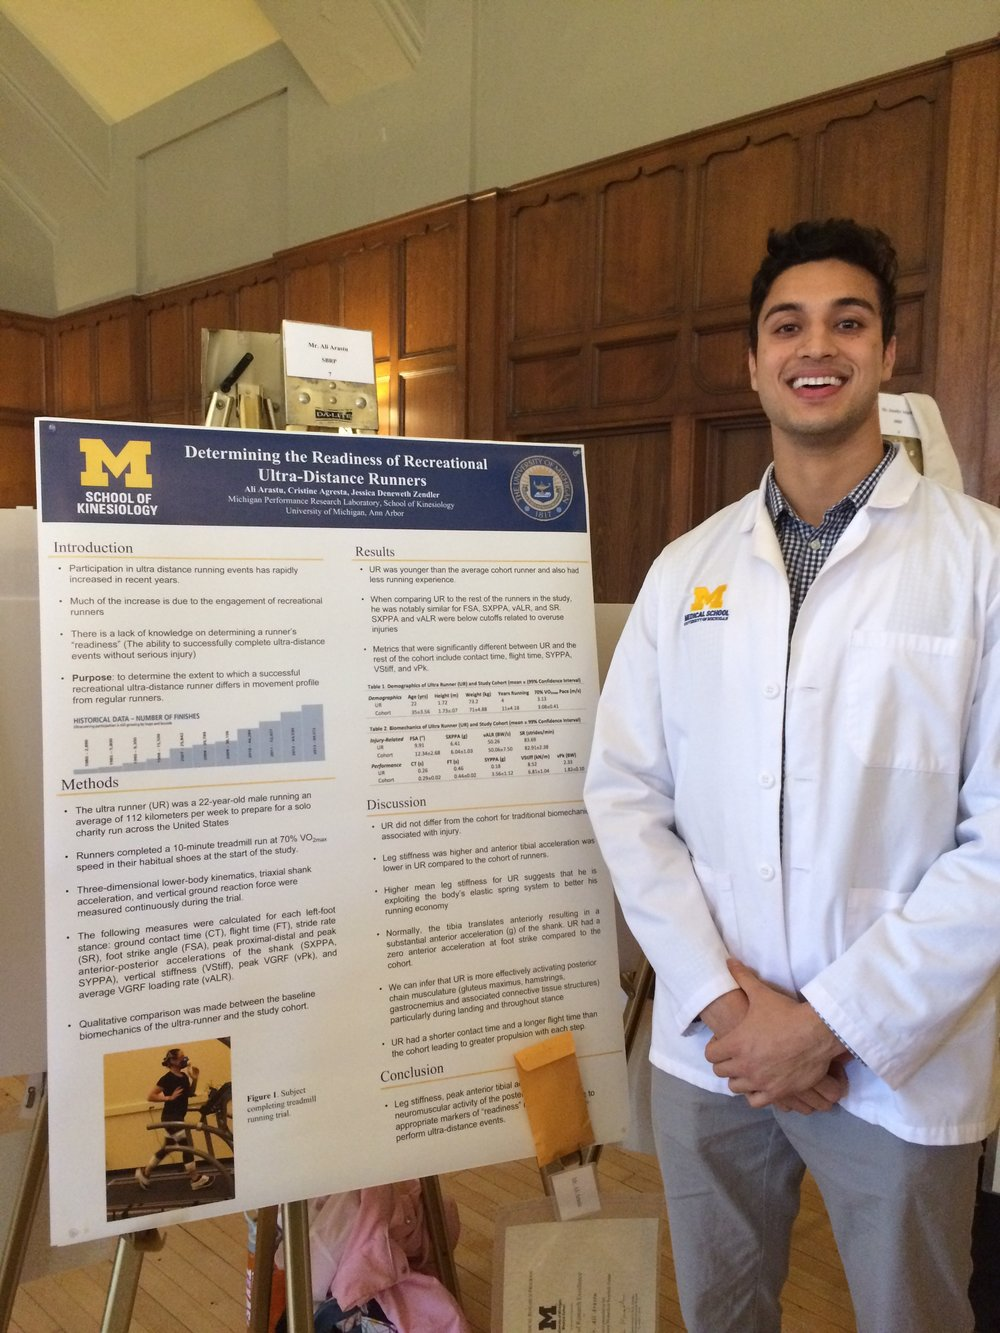 Ali Arastu with his poster at the SBRP Fall Research Forum at the Michigan League on Monday, November 7, 2016.